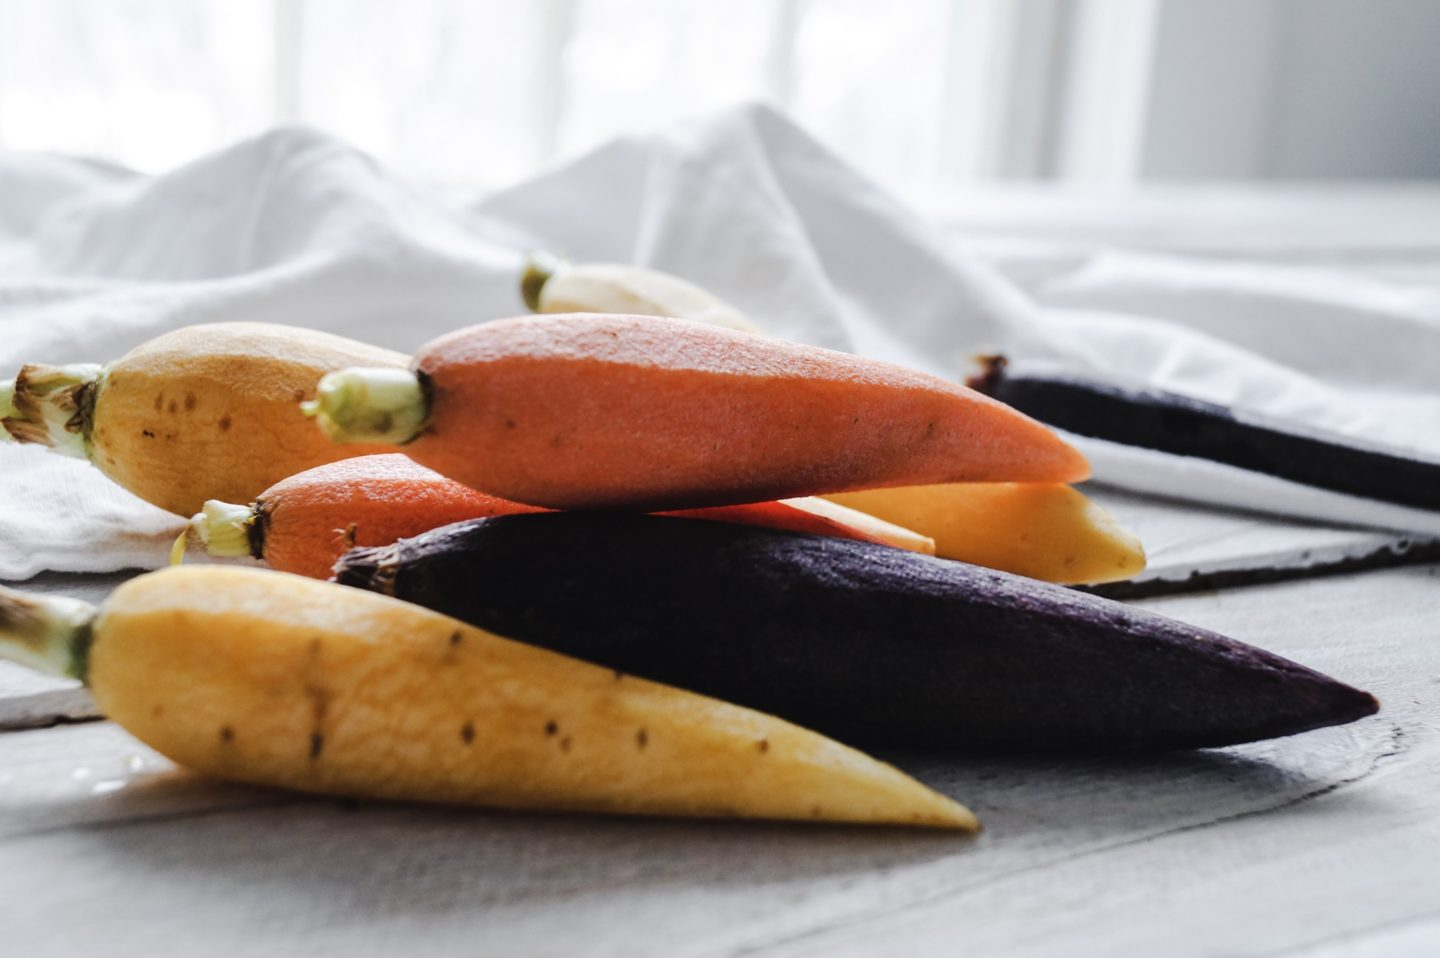 light and bright food photography and styling with some ideas for a spring veggie tray.